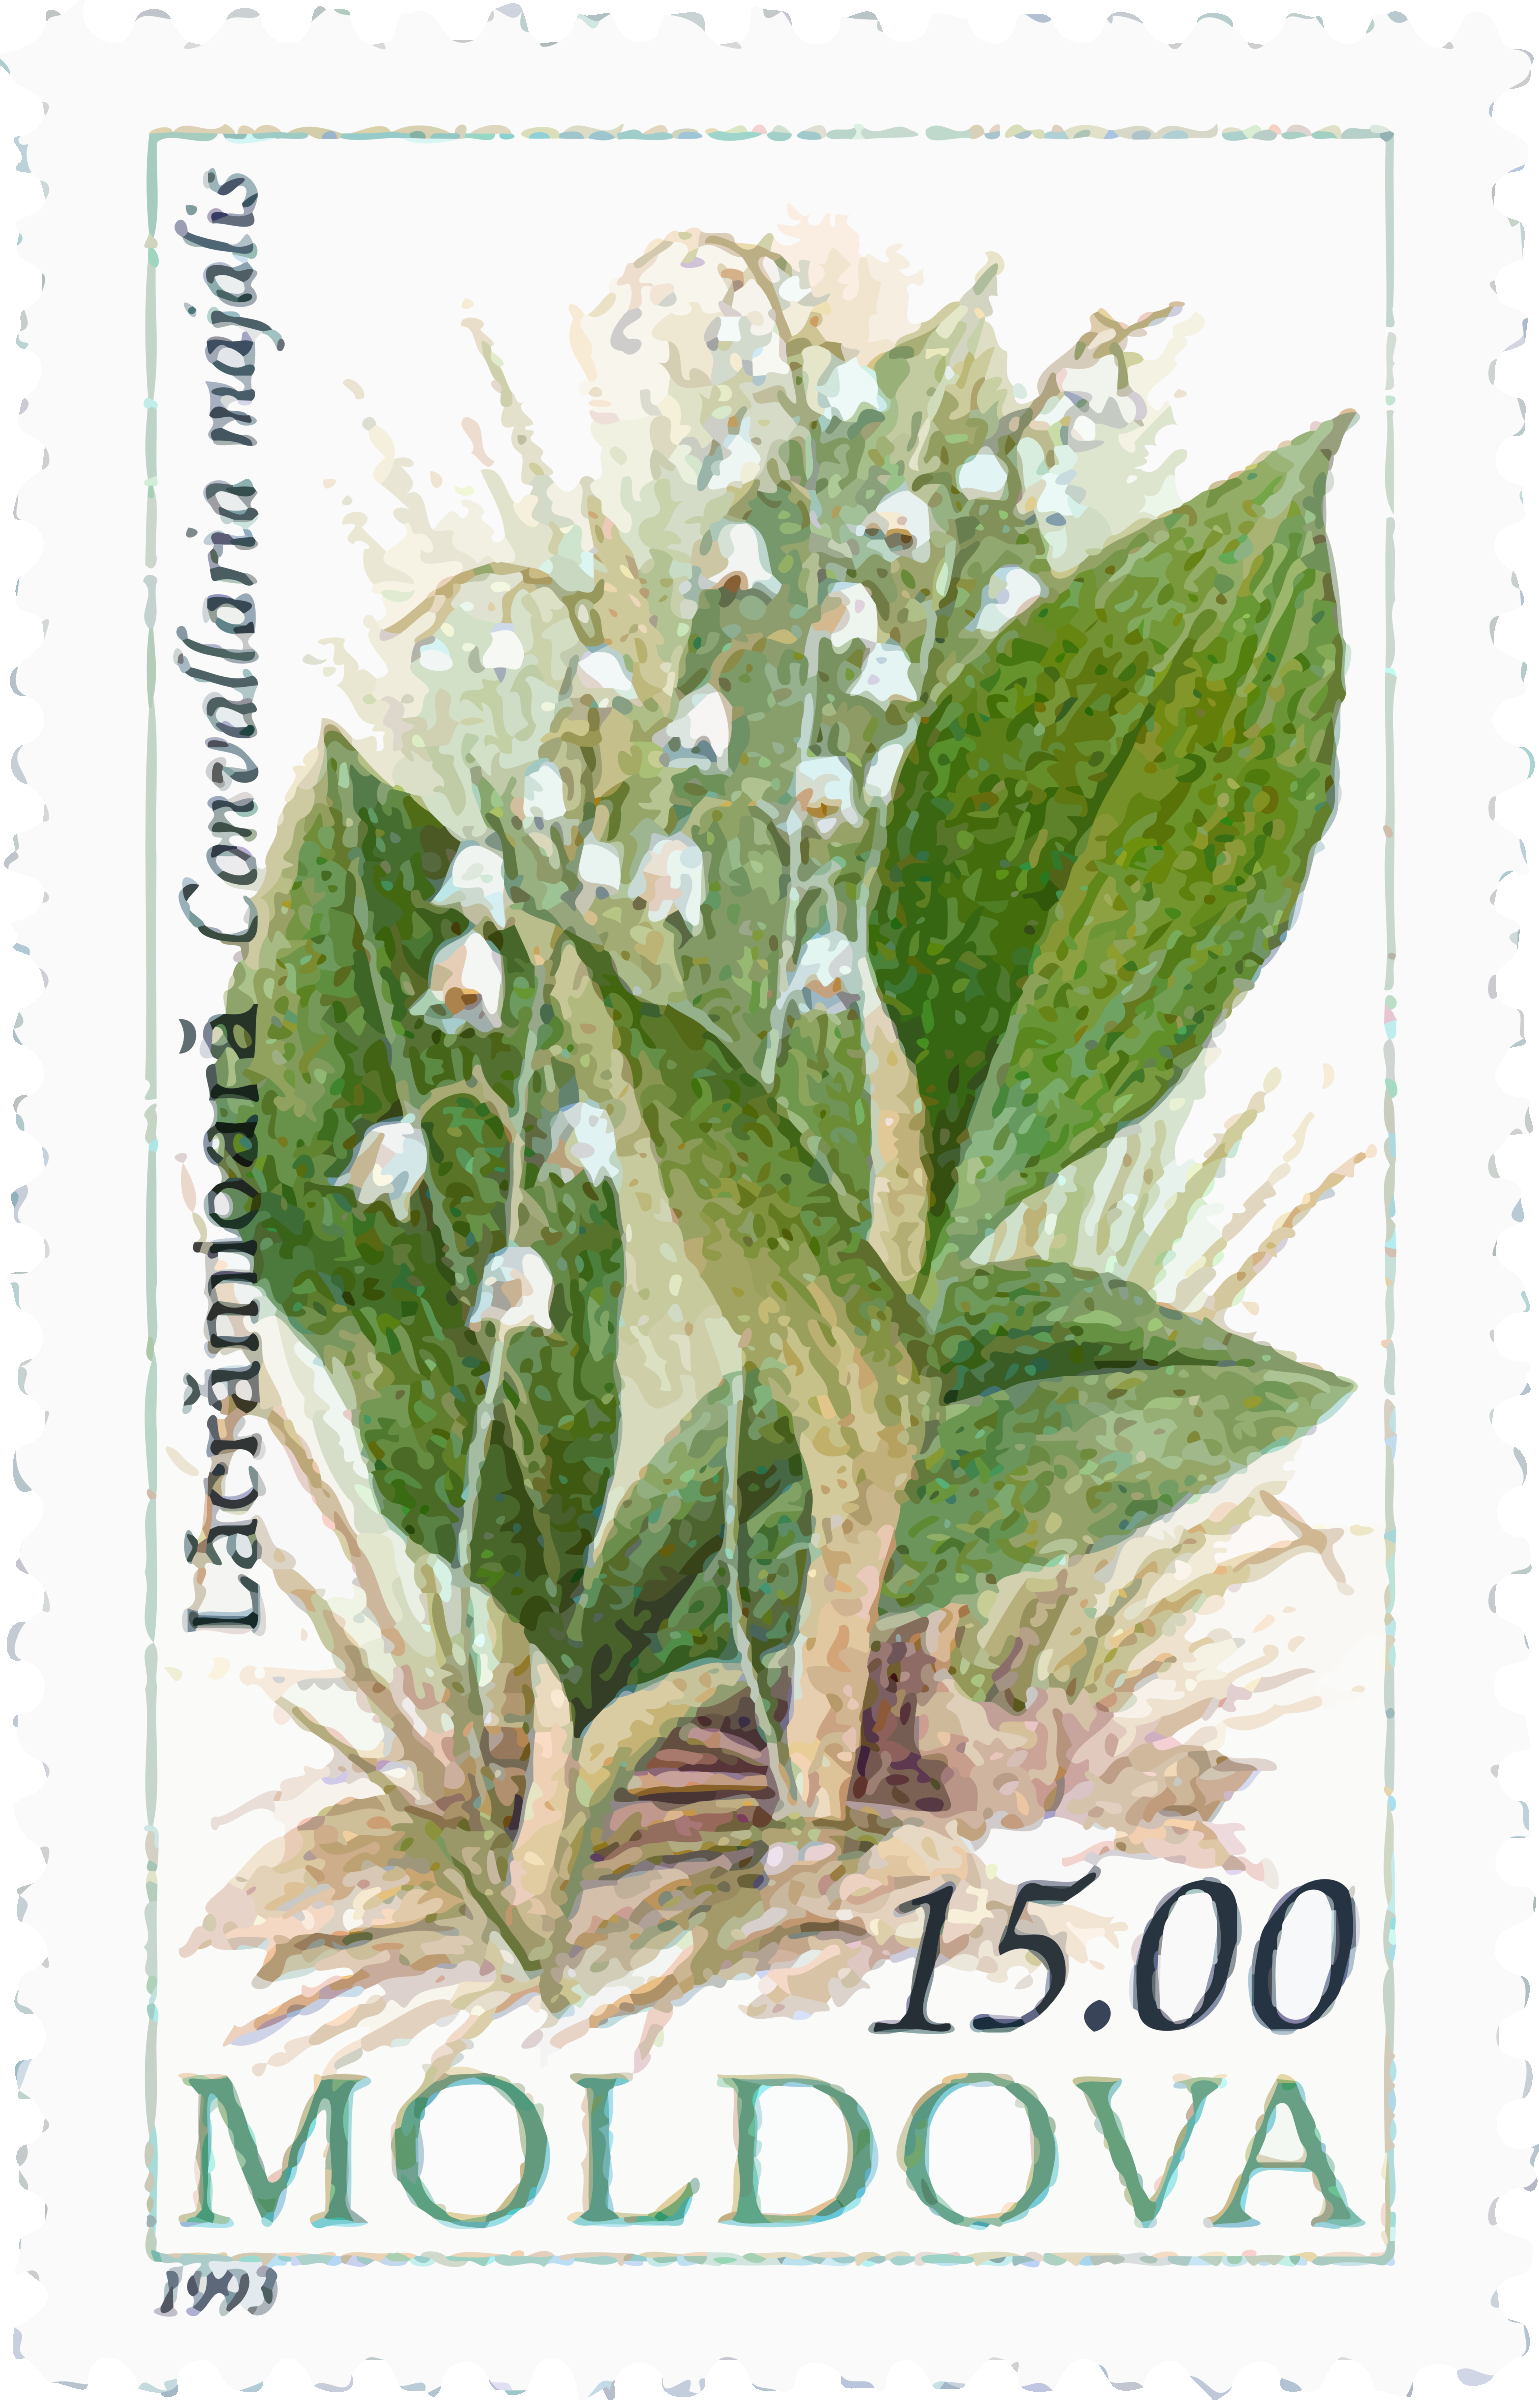 Moldova stamp by Firkin